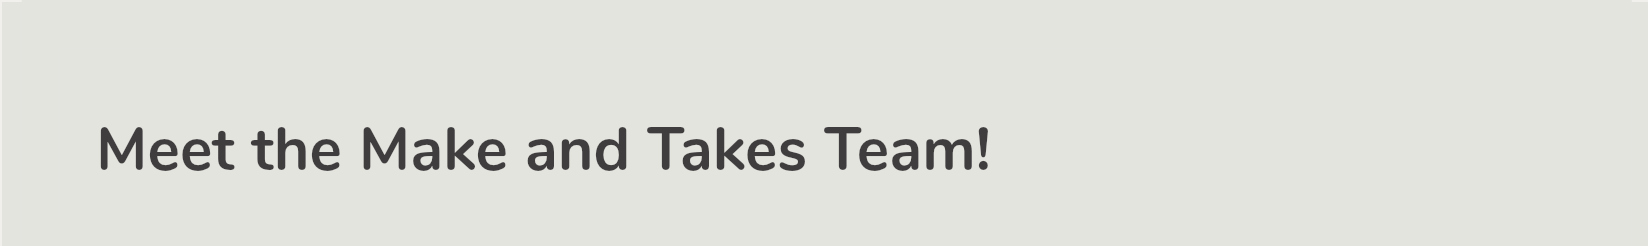 Make and Takes Team